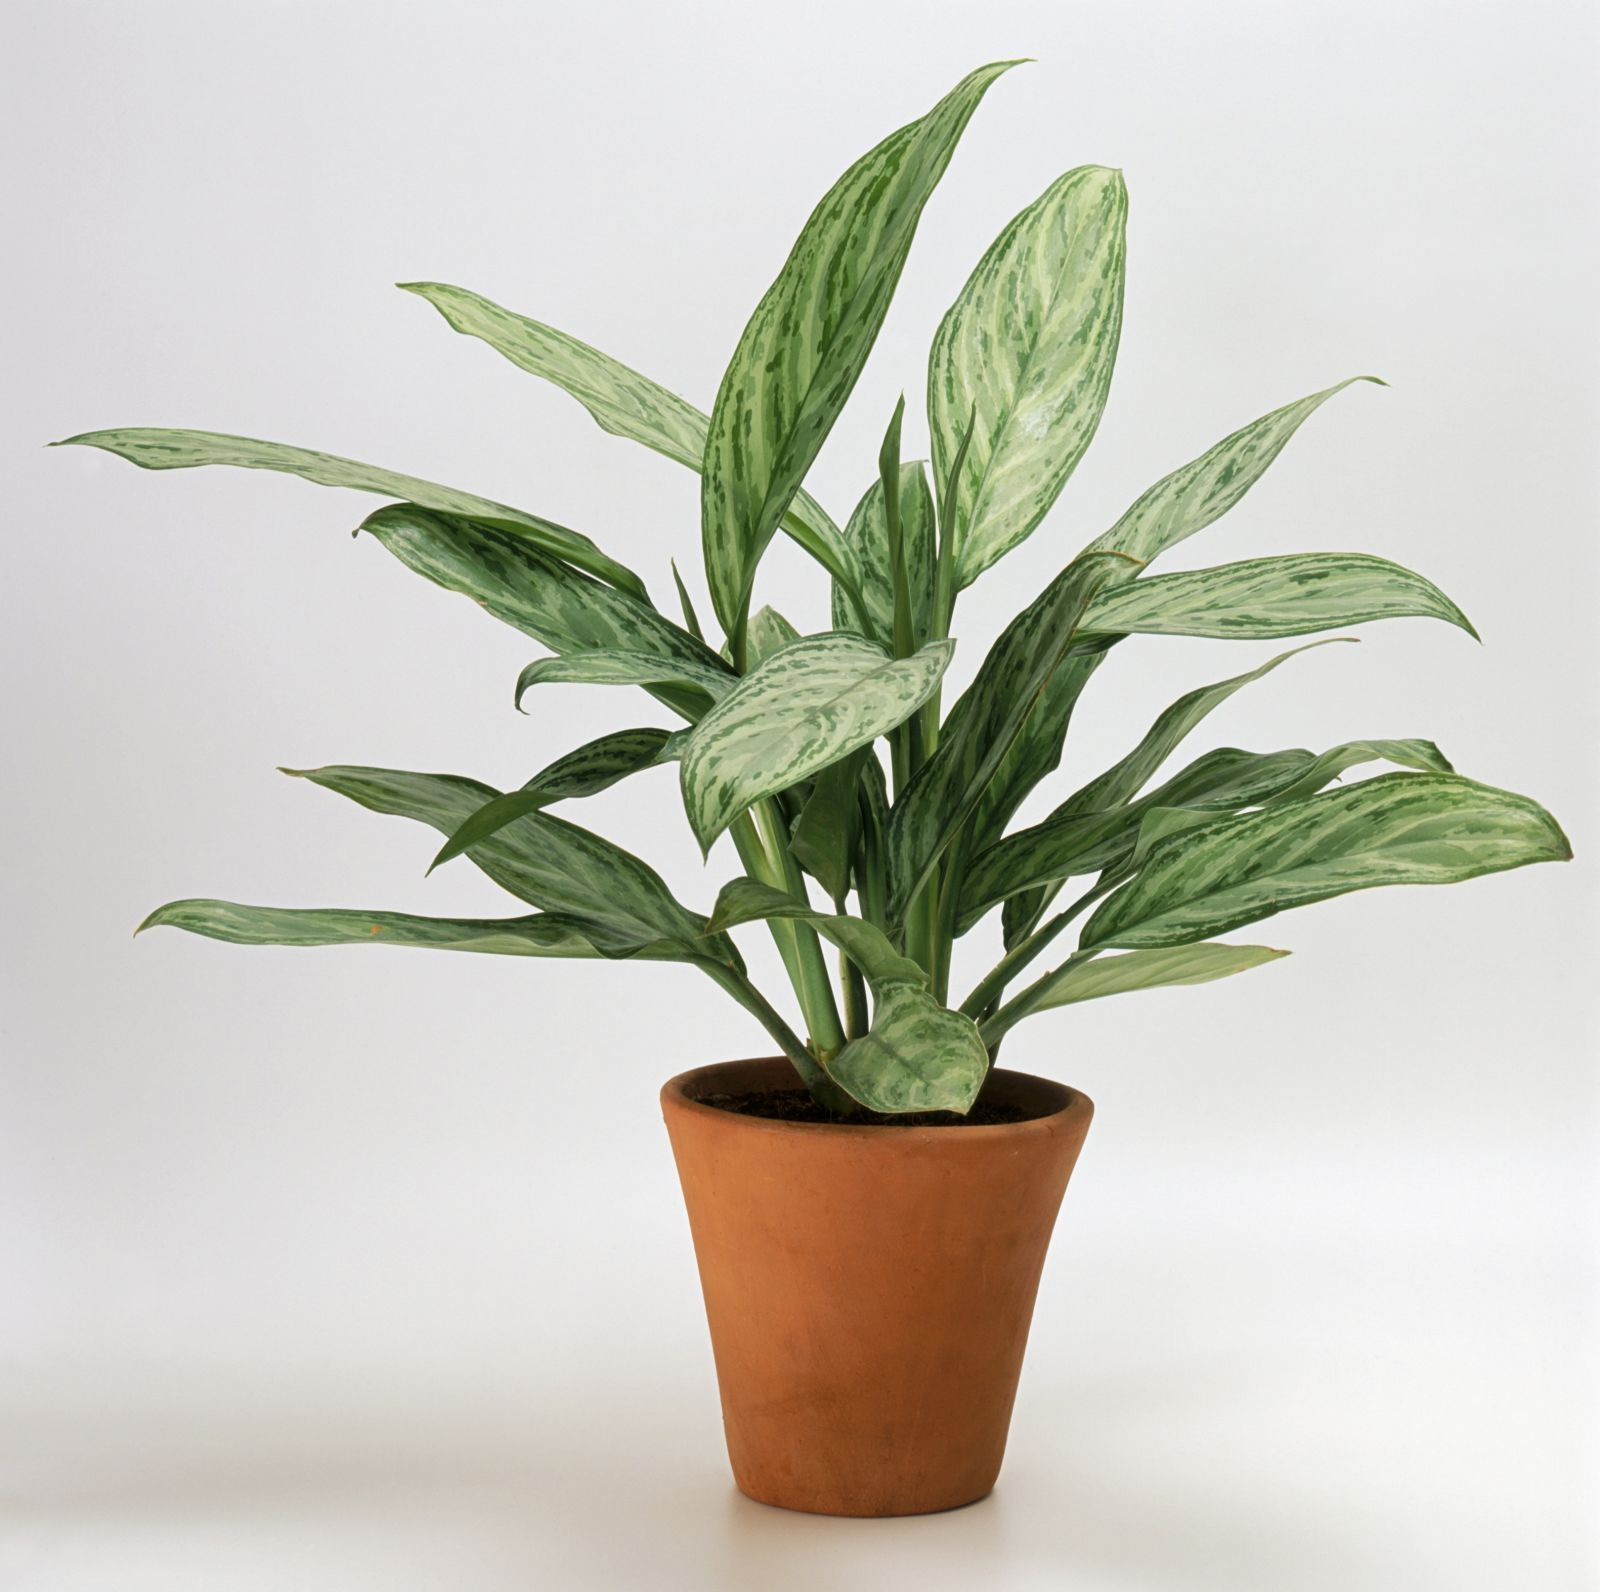 9 Houseplants You Rarely Have to Water  - HouseBeautiful.com